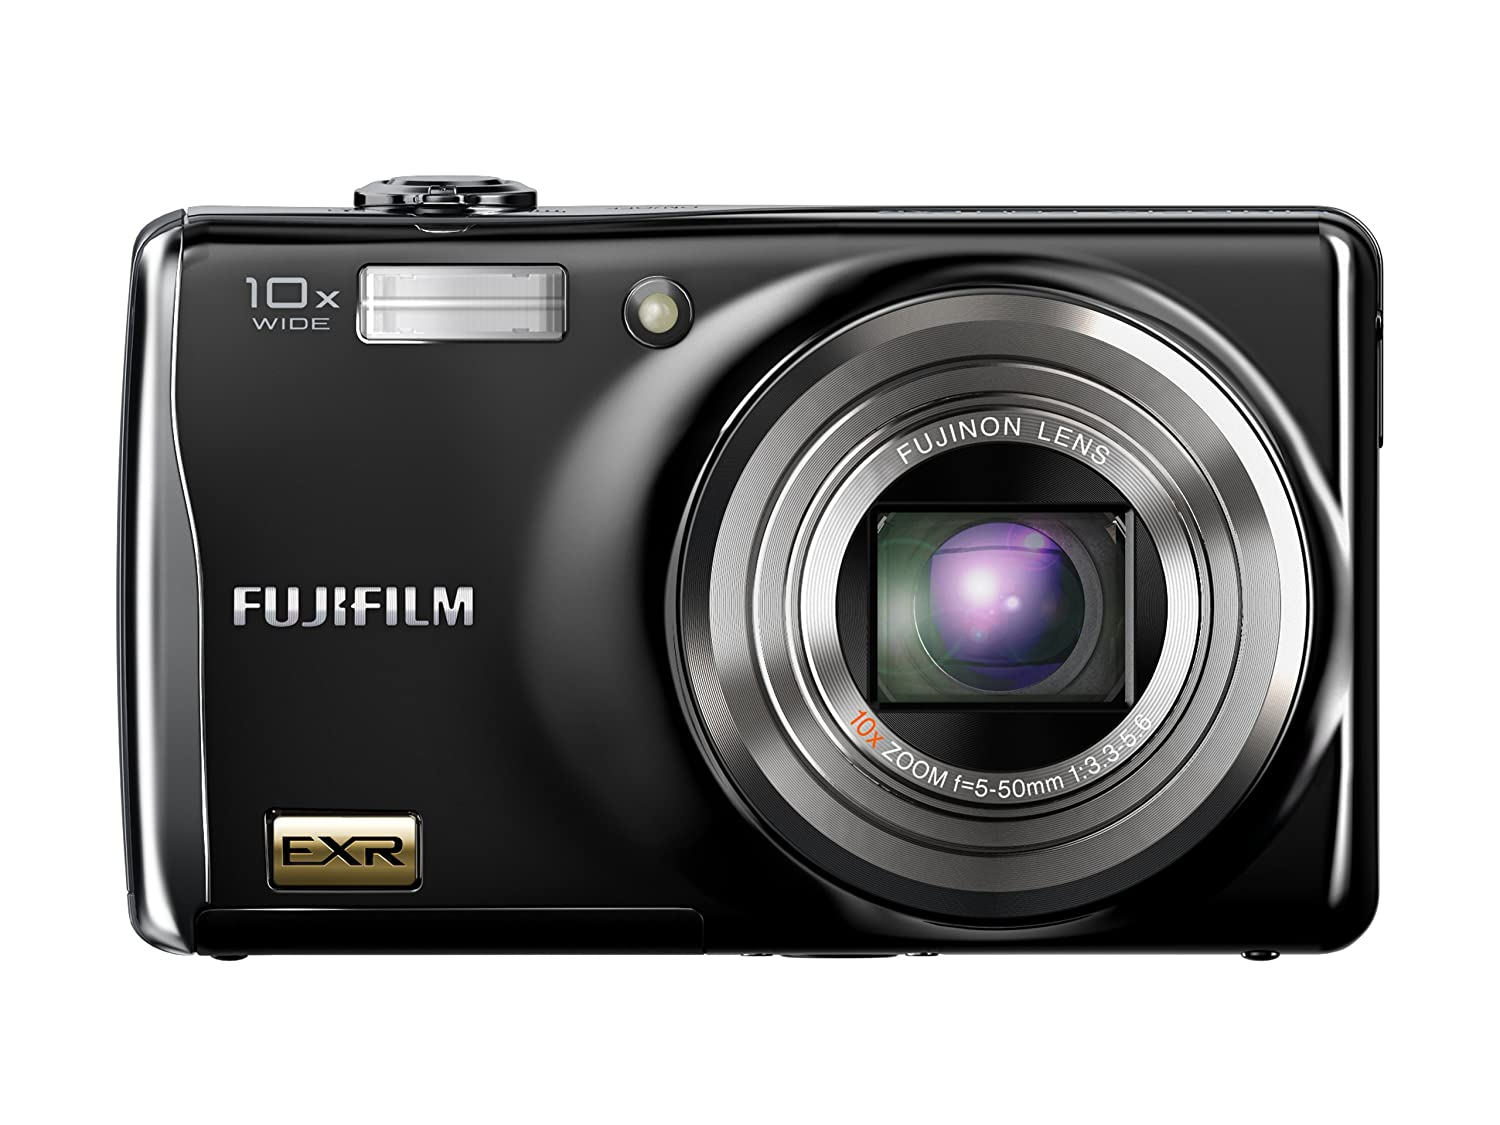 Amazon.com : Fujifilm FinePix F80EXR 12 MP Super CCD EXR Digital Camera  with 10x Wide Angle Optical Zoom and 3.0-Inch LCD : Point And Shoot Digital  Cameras ...